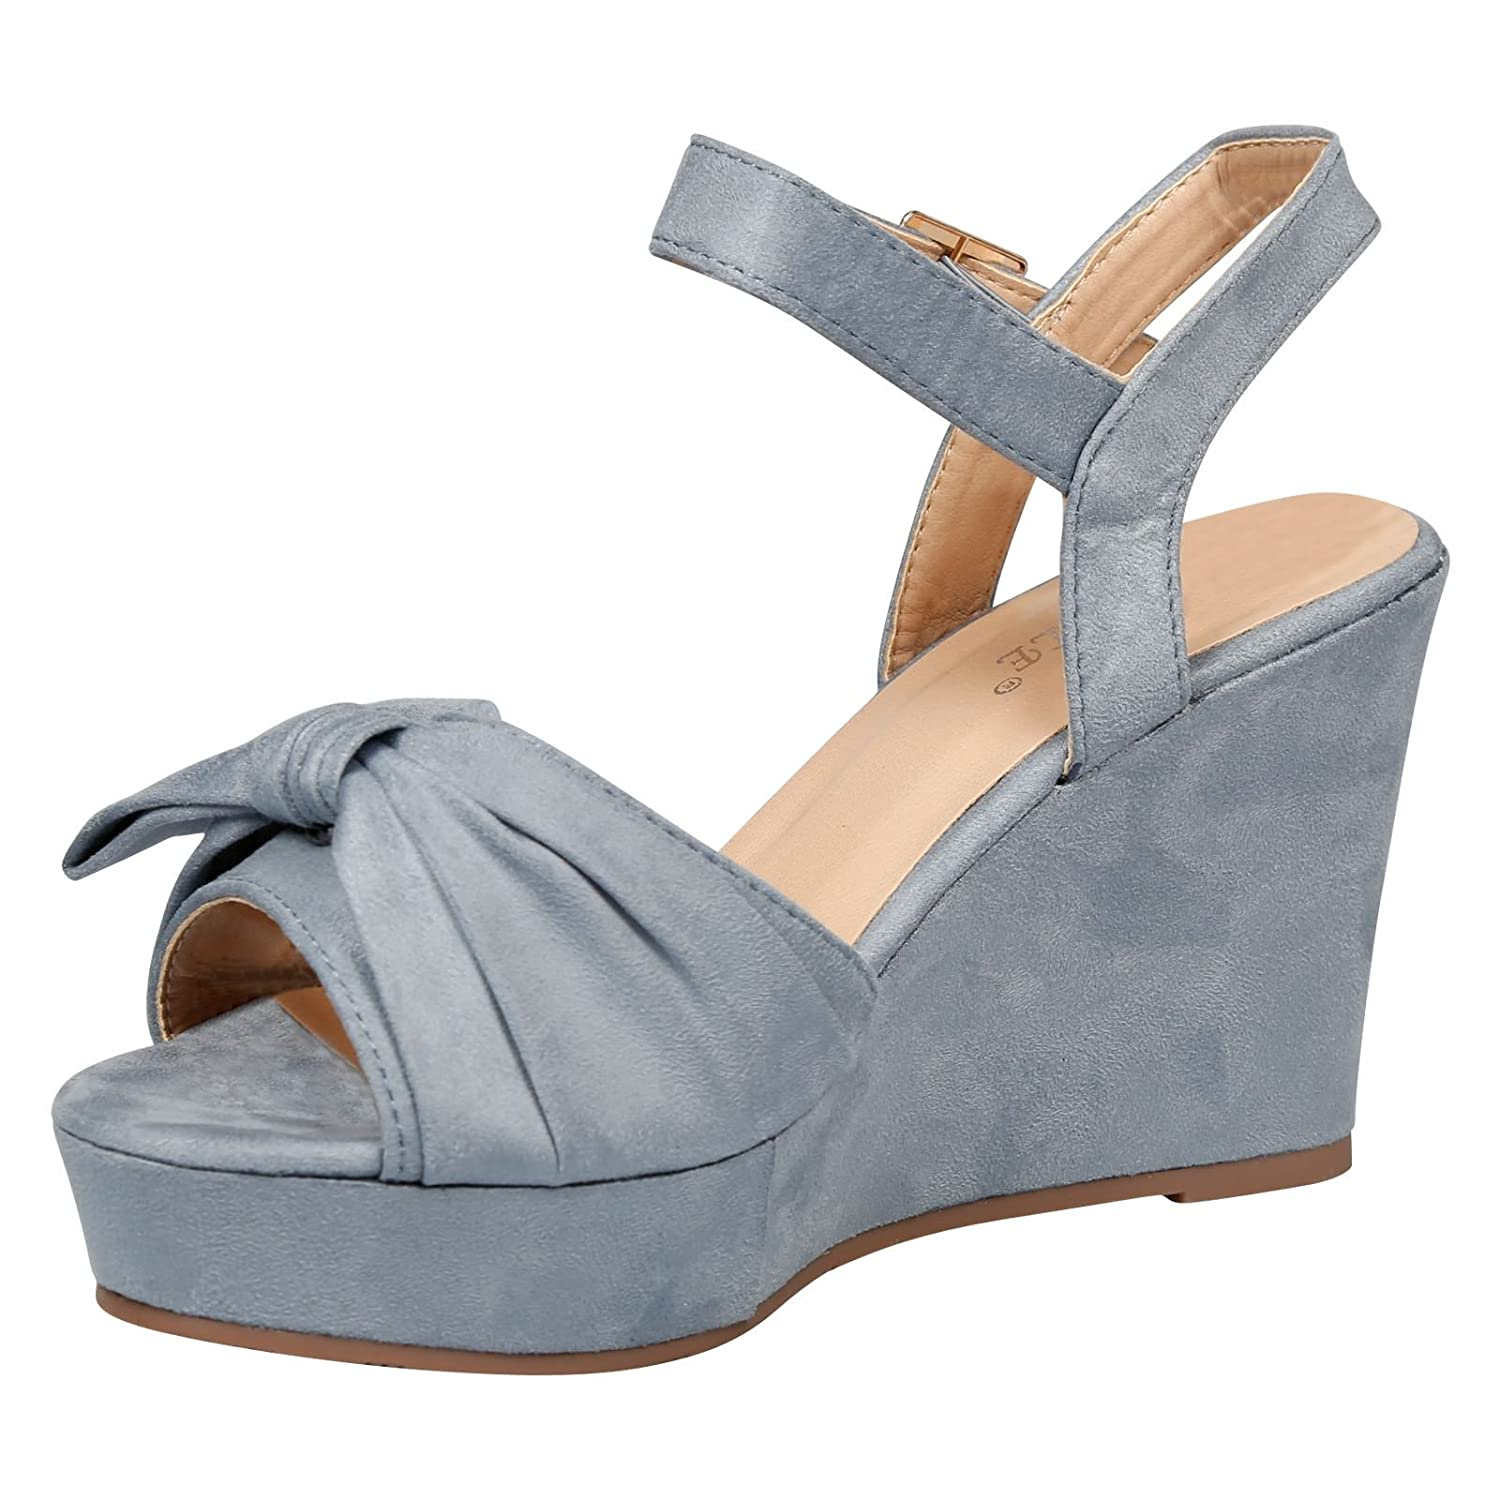 2f9ad5e5db39 Feet First Fashion Elora Ladies Shoes High Wedges Heels Platforms Womens  Fashion Sandals Shoes Size  Amazon.co.uk  Shoes   Bags